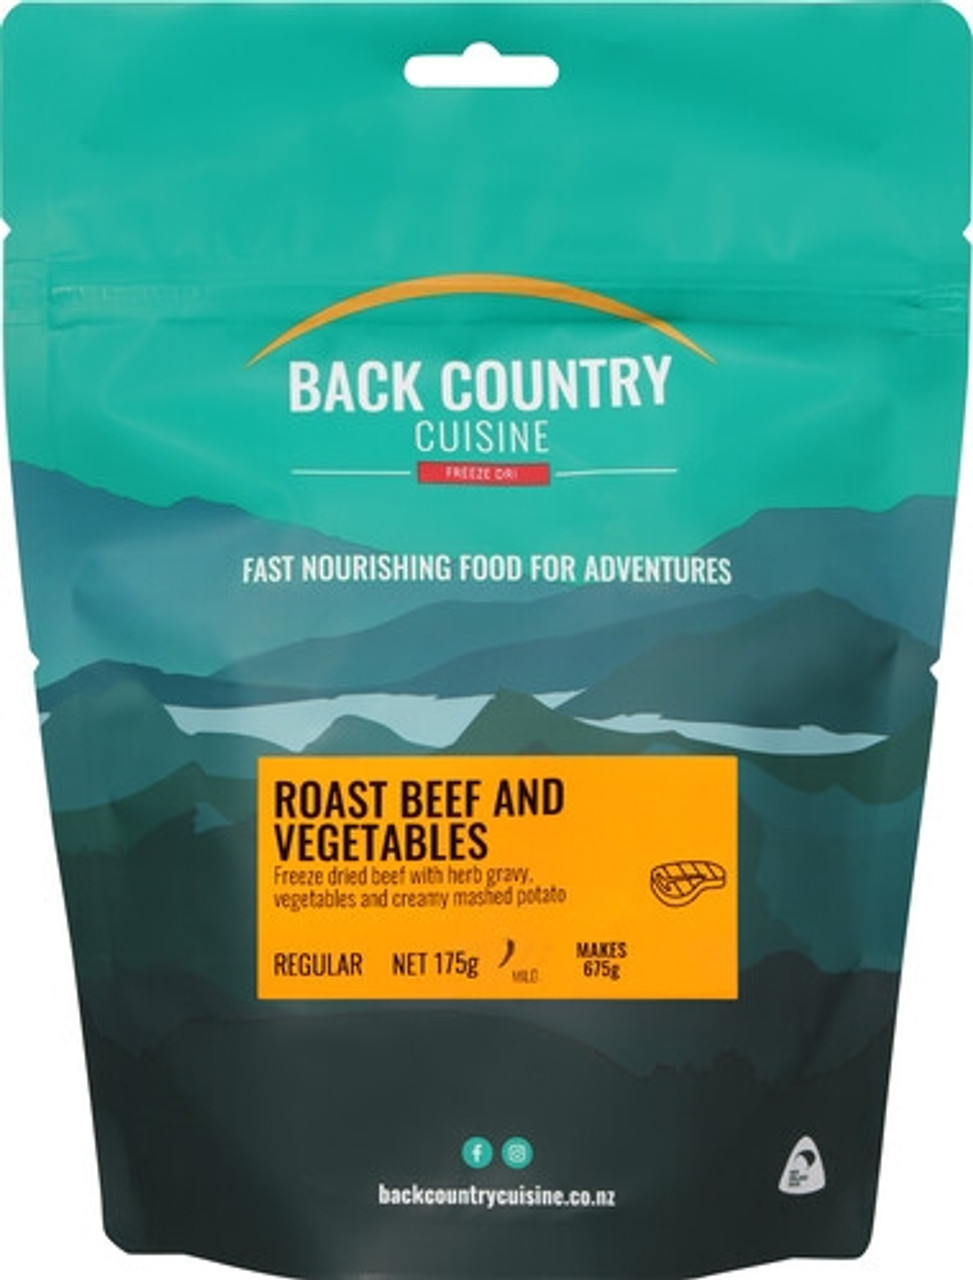 Back Country Cuisine: Roast Beef & Veg - 2 Serve Online at Mountain Mail Order South Africa